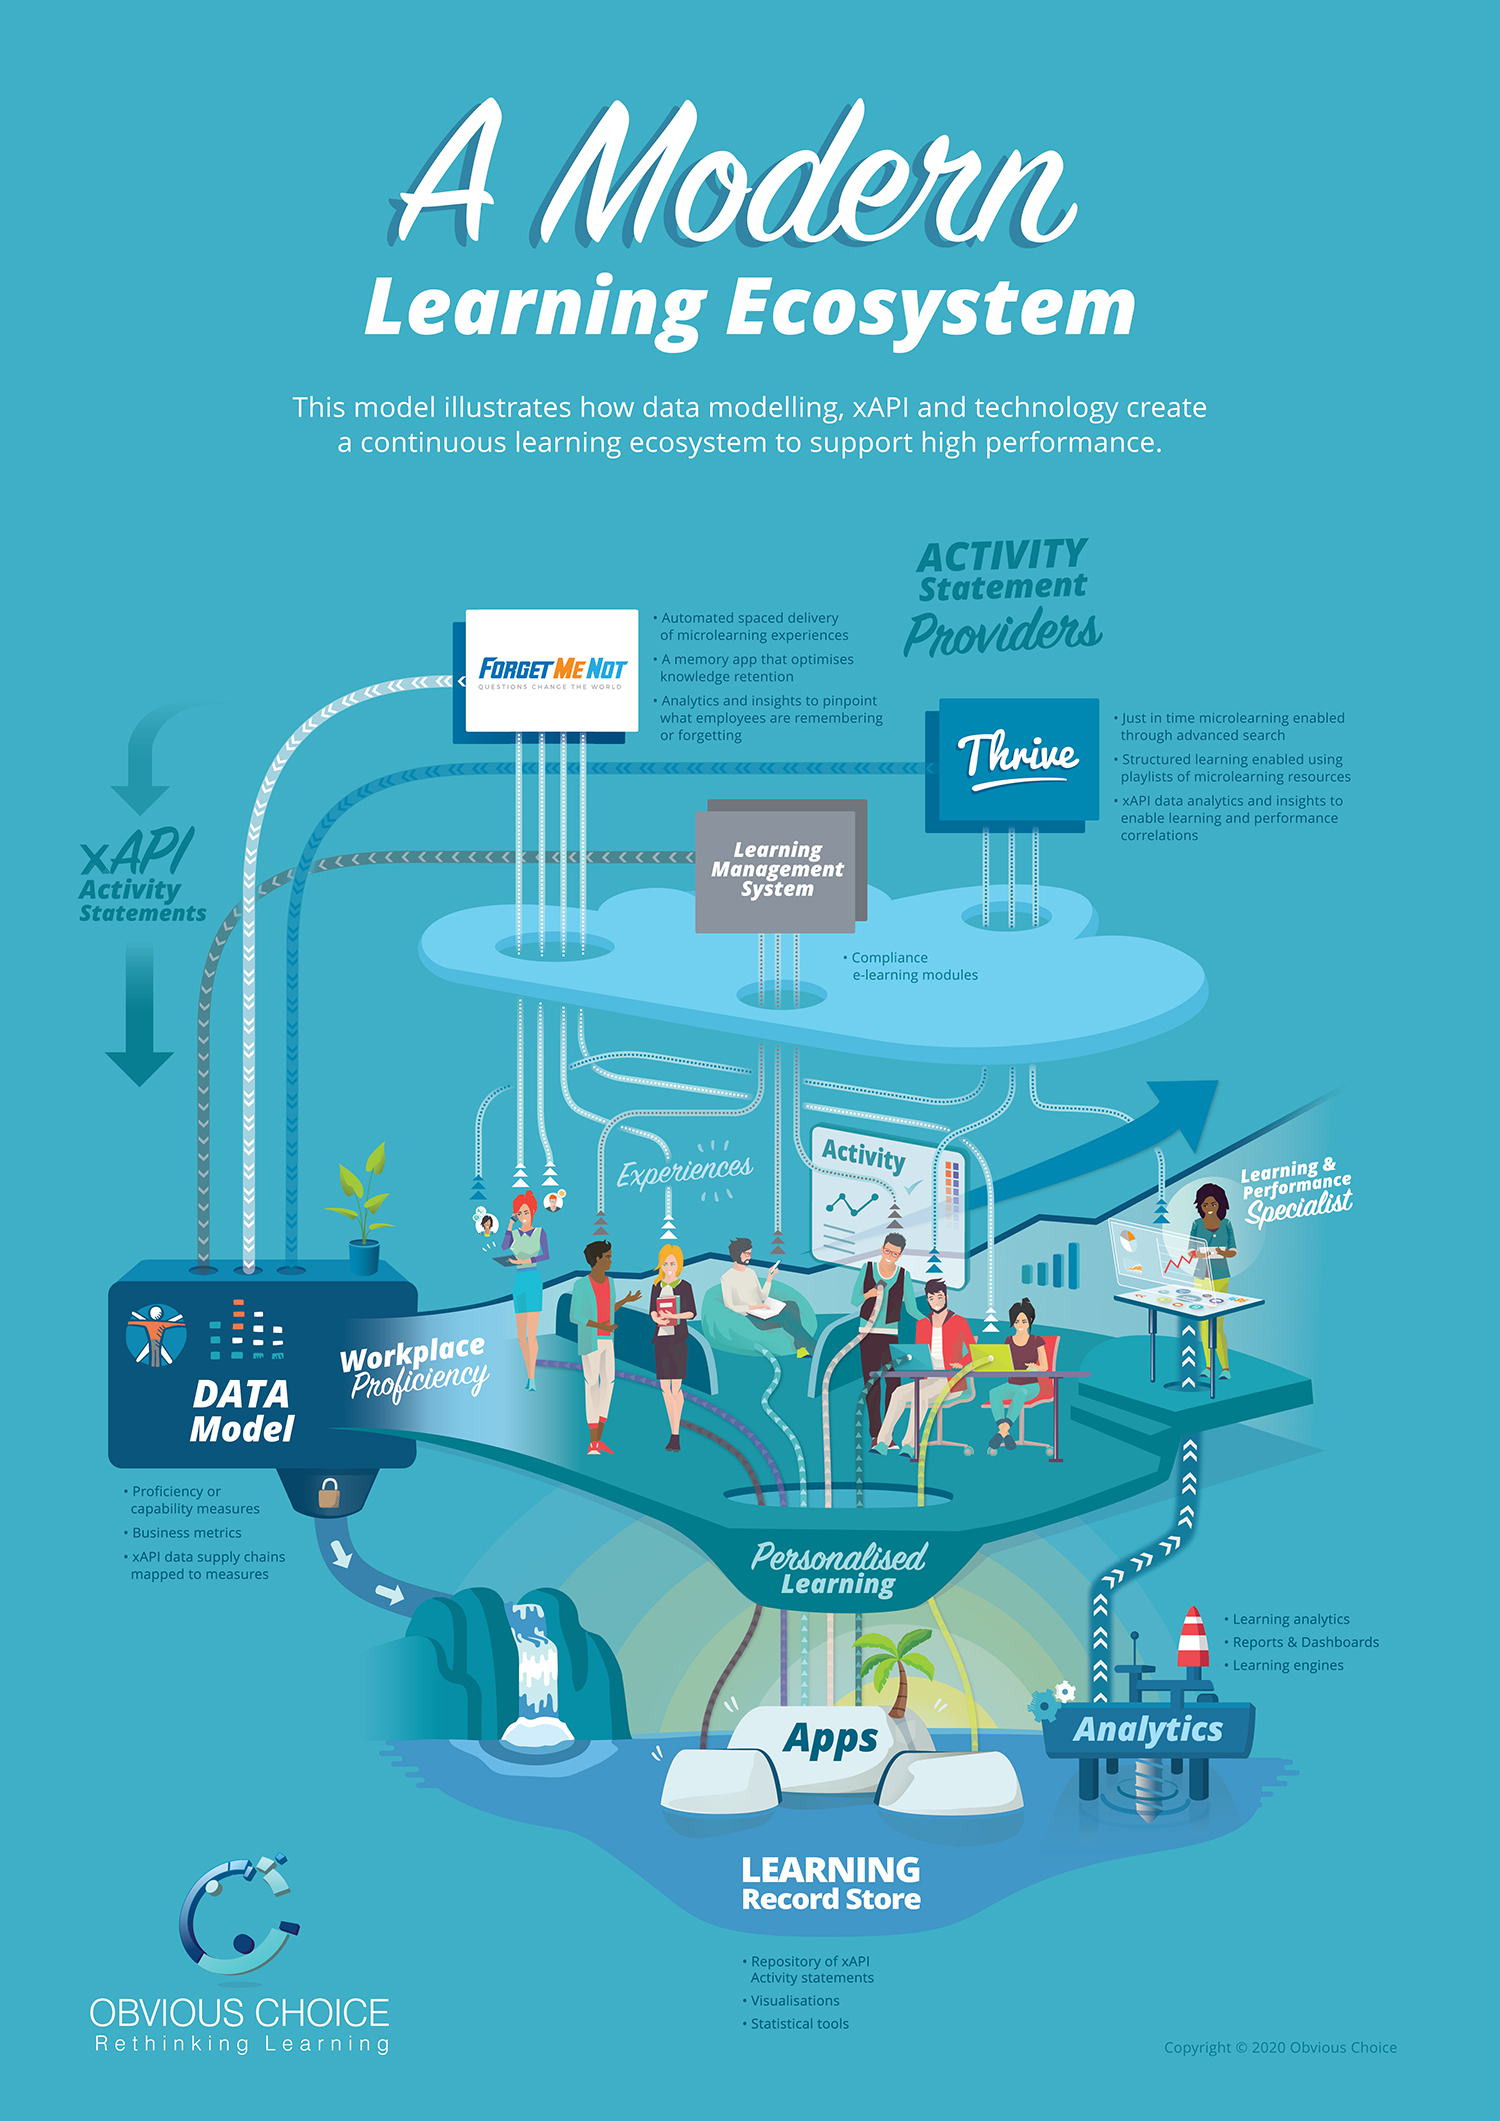 Modern Learning Ecosystem by Obvious Choice